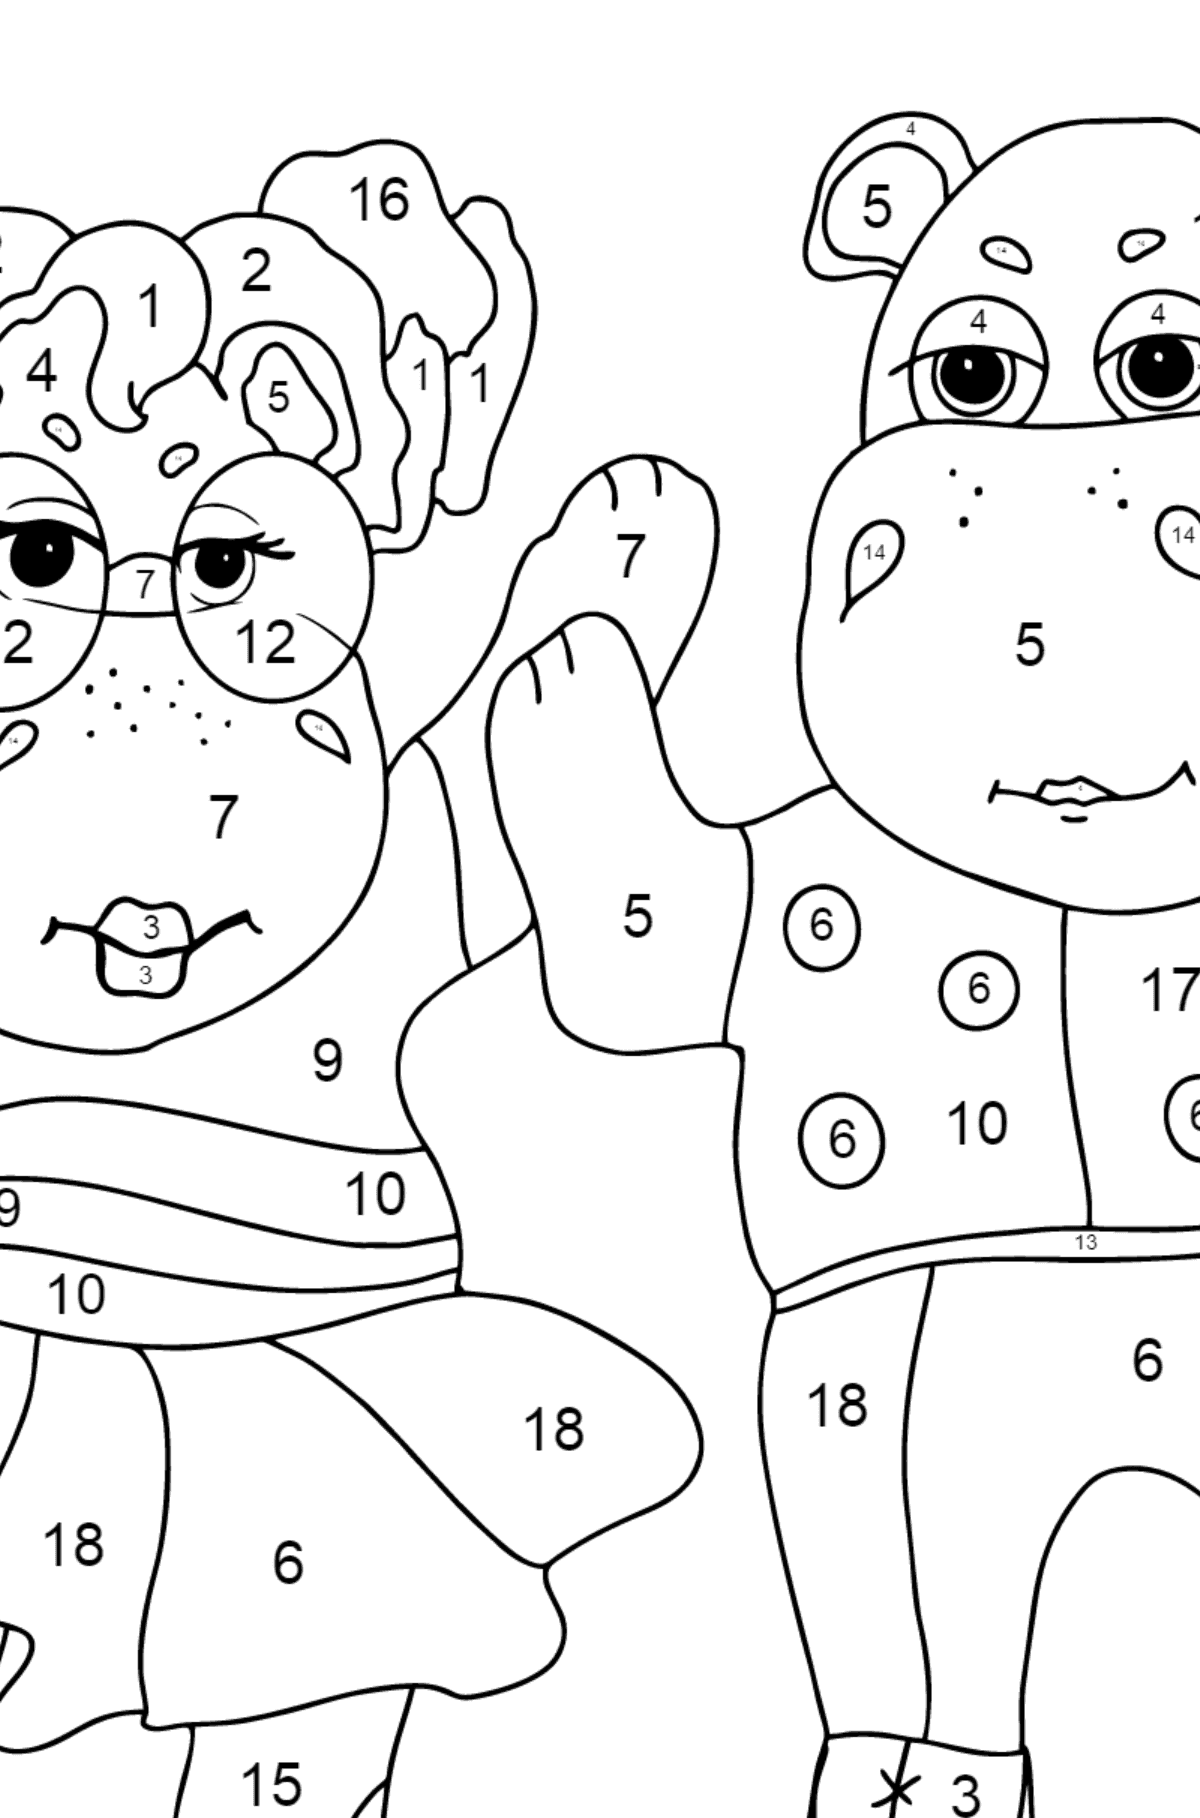 Coloring Page - Hippos are Dancing for Children  - Color by Number